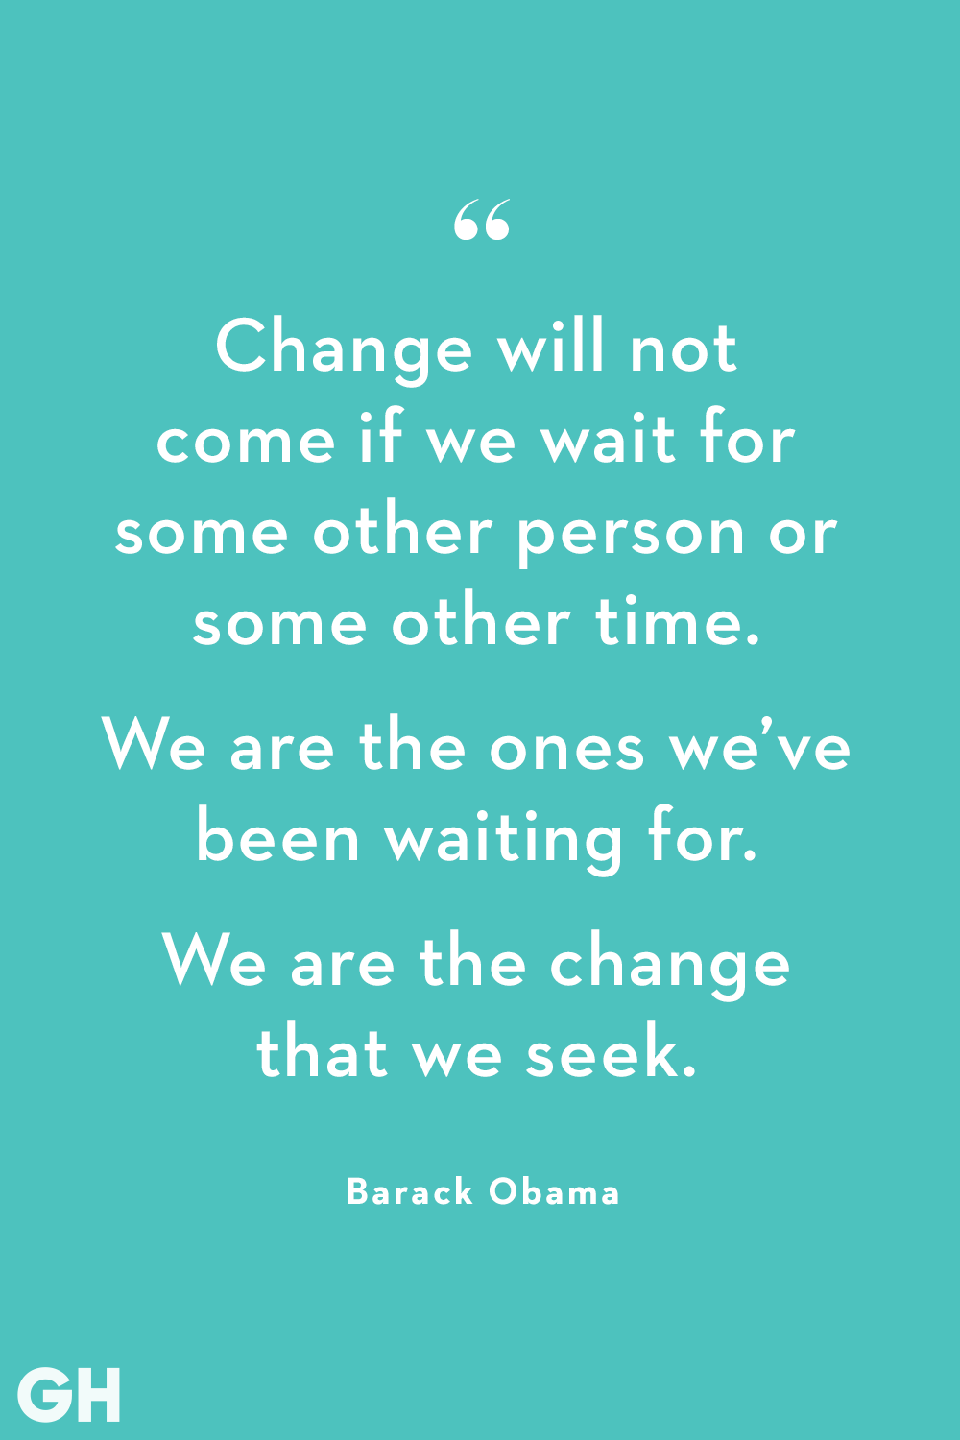 <p>Change will not come if we wait for some other person or some other time. We are the ones we've been waiting for. We are the change that we seek.</p>